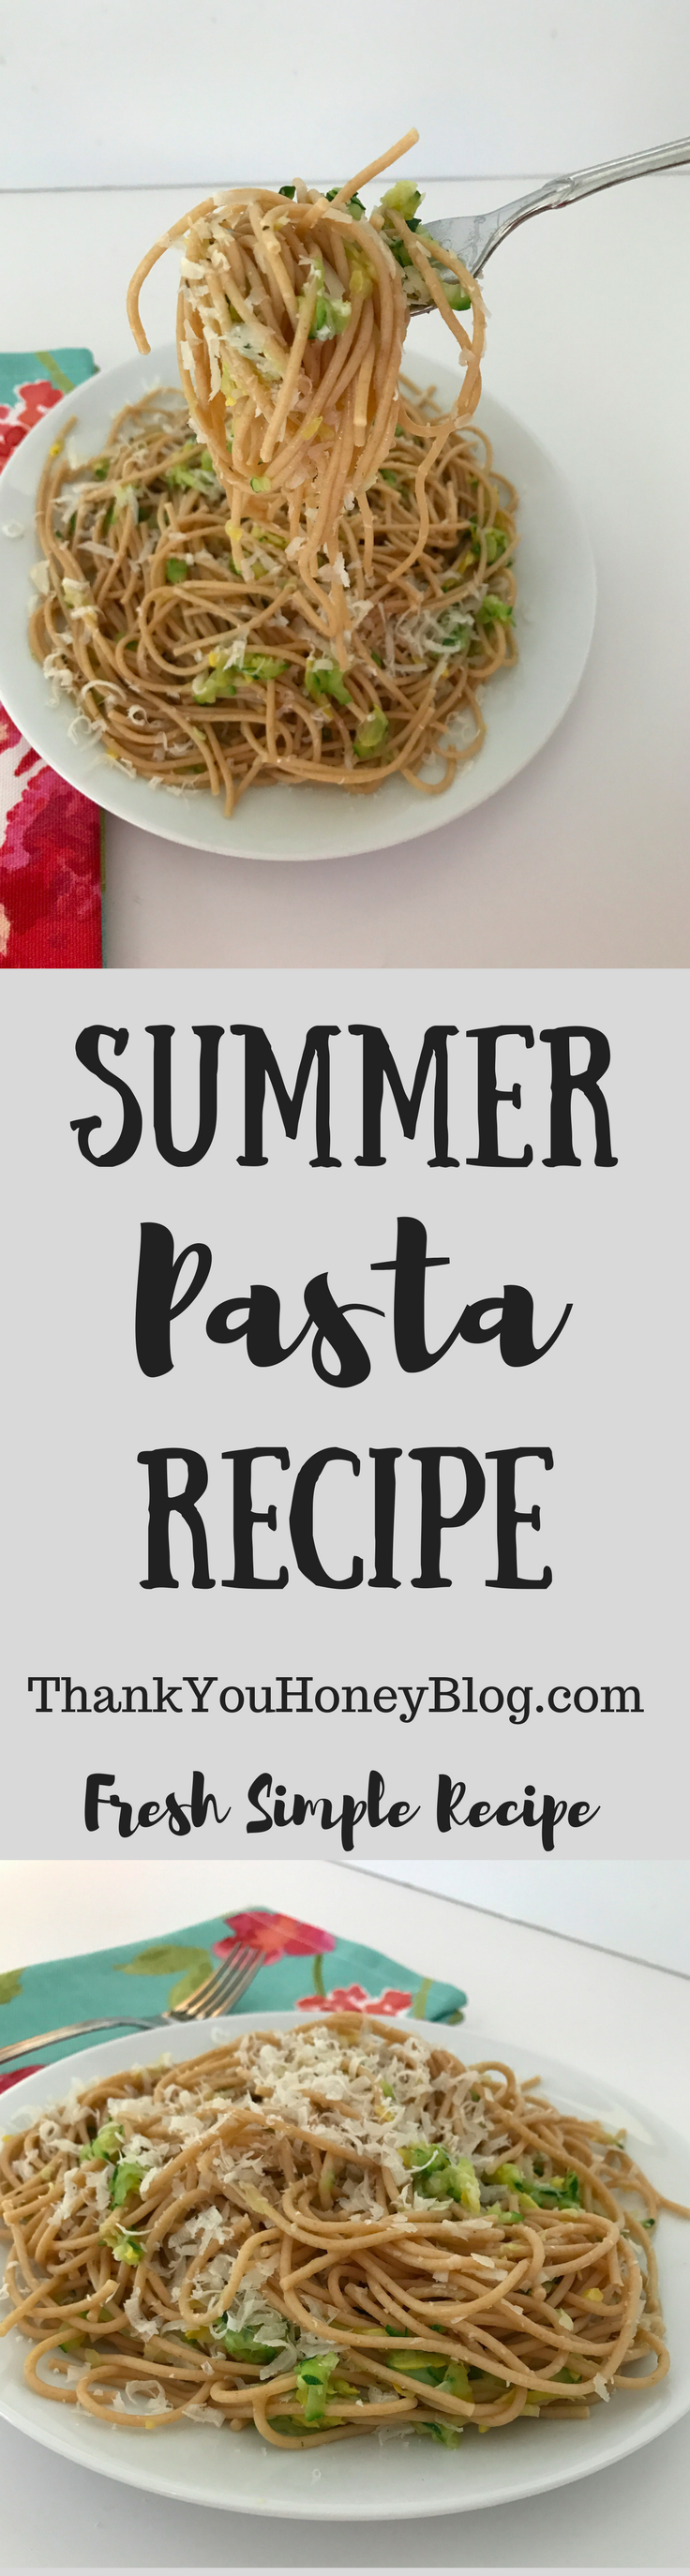 Summer Pasta Recipe, Recipe, Dinner, Main Dish, Pasta, Simple Meals, Clean Eating, Healthy, Summer, Healthy Meals, Supper, Pasta Night, Tutorial, ThankYouHoneyBlog.com